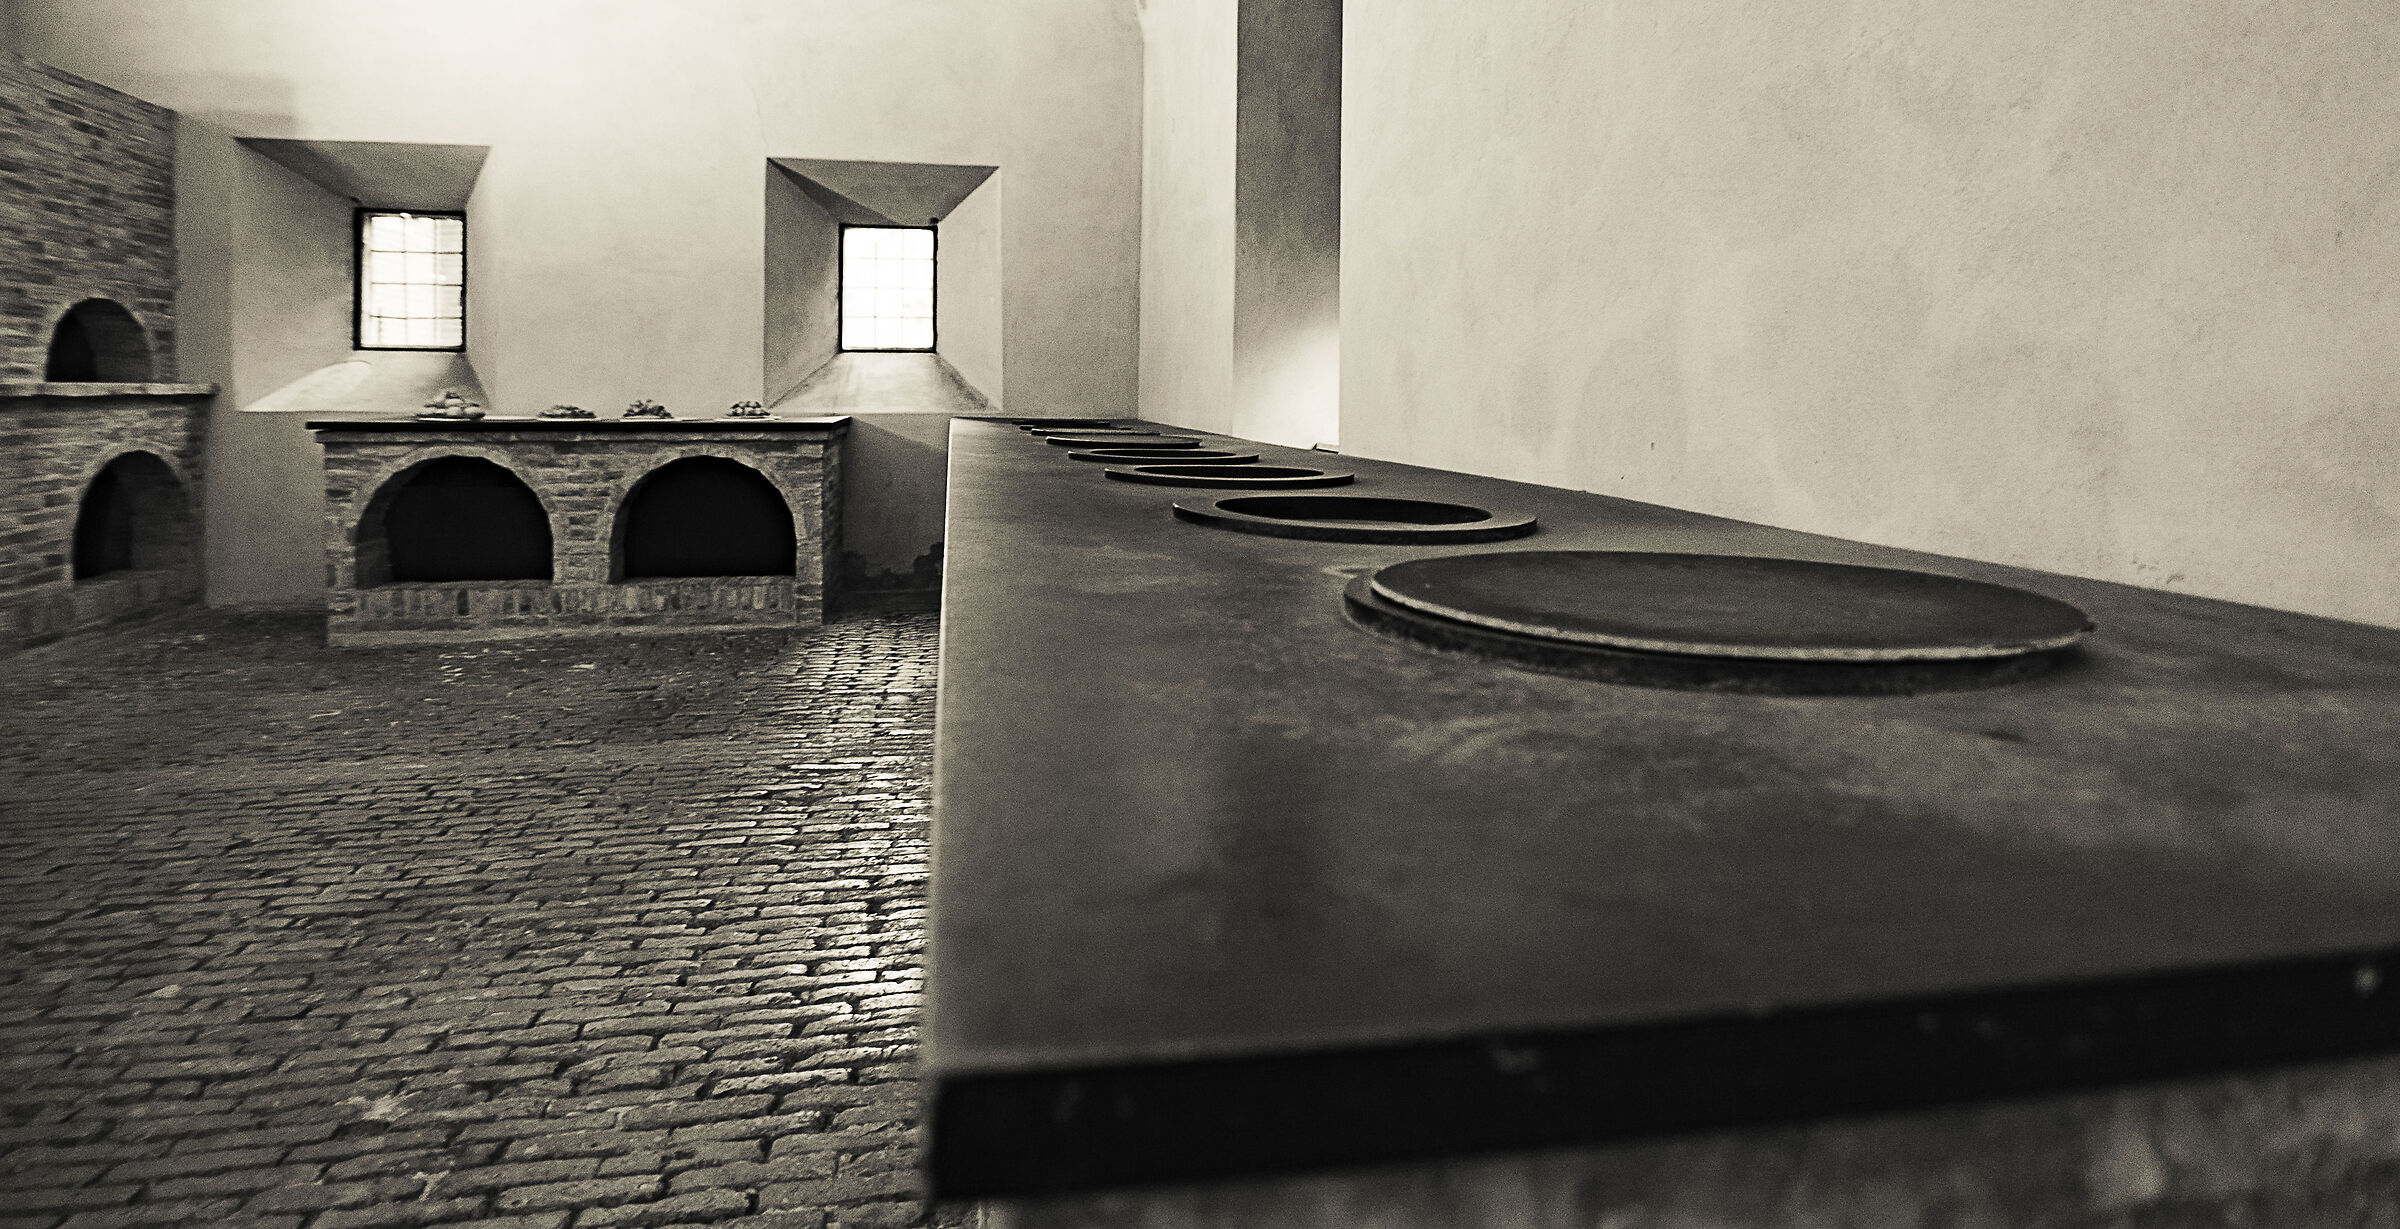 The kitchens of the castle of Ferrara...